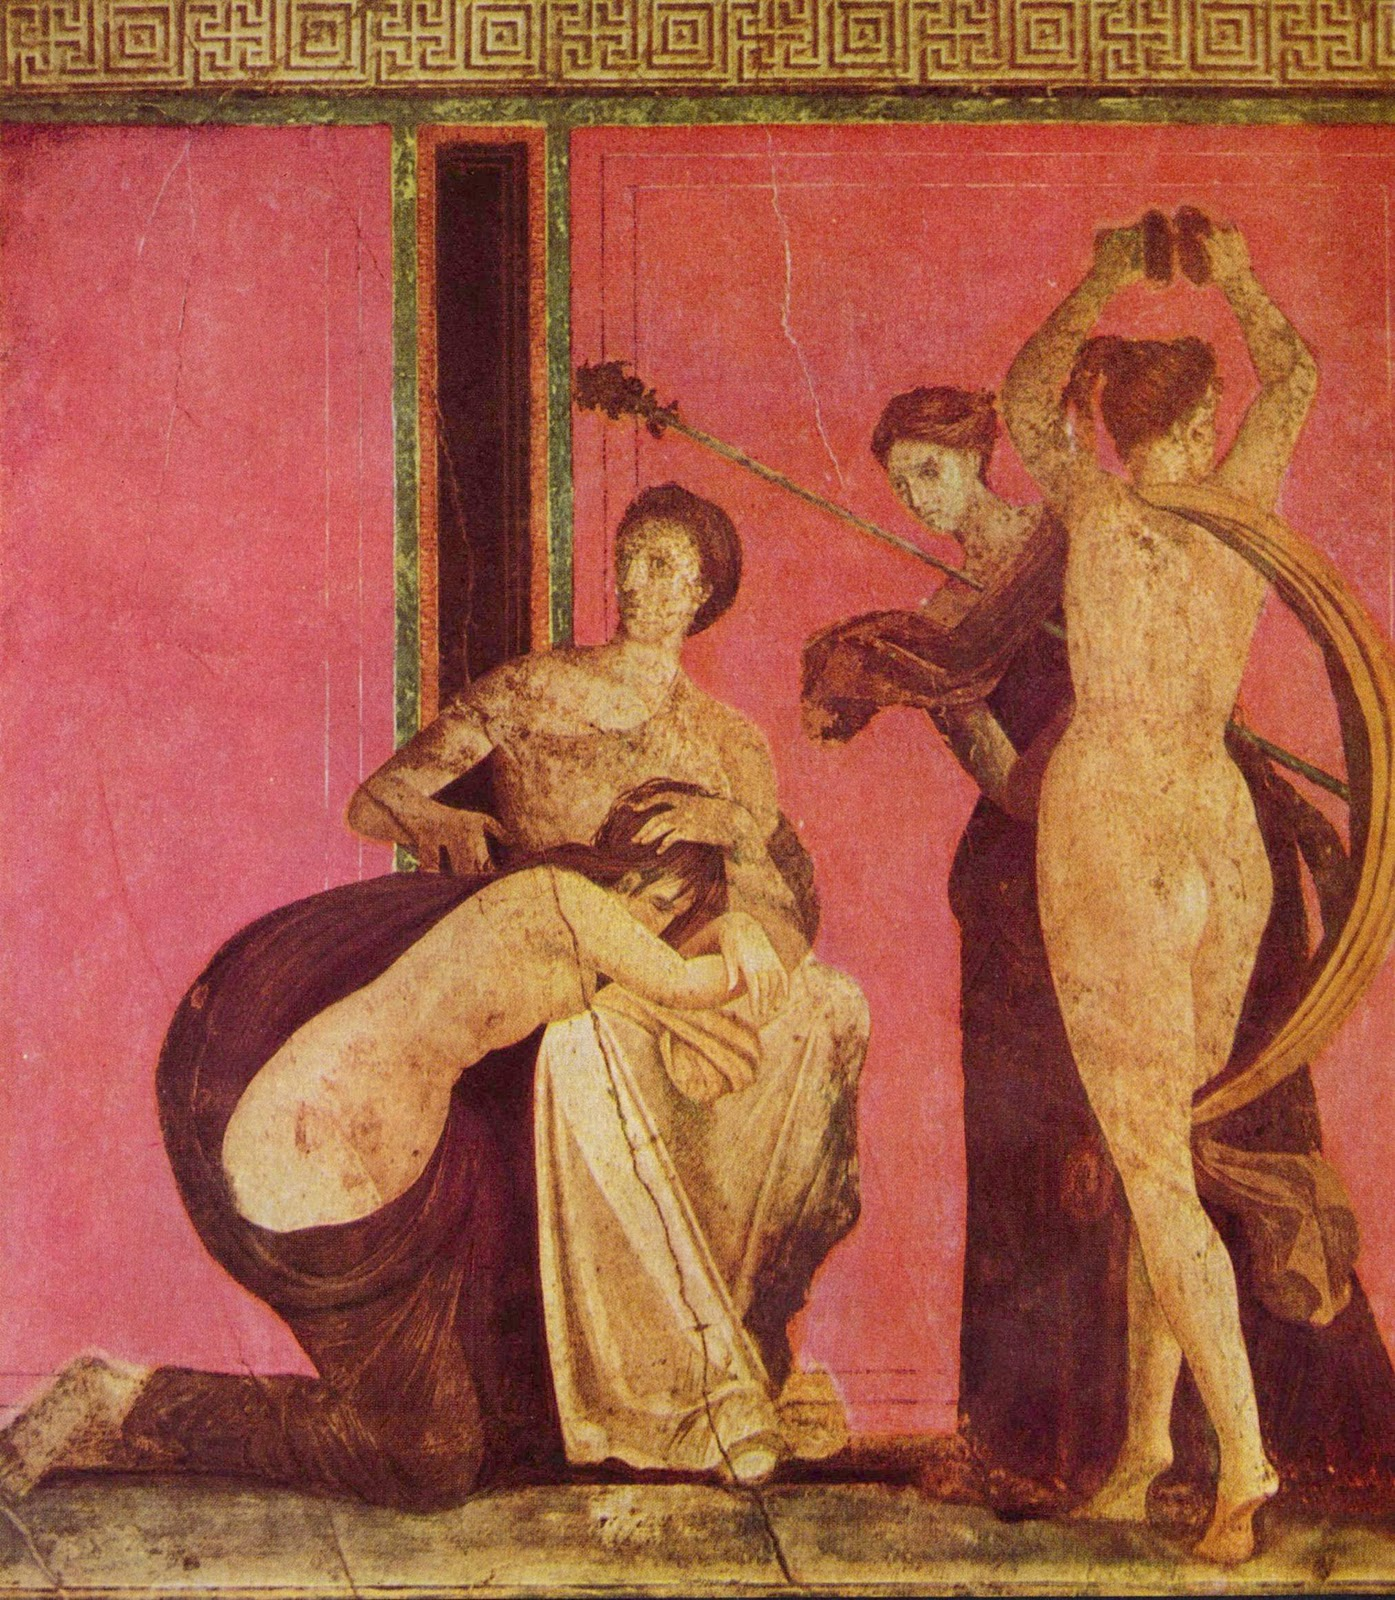 Tropical storm villa of mysteries in pompeii ancient rome in this we find that the girl is leaning before the herm a priestess stands with a staff in hand and a winged creature raises a whip to lash the girl biocorpaavc